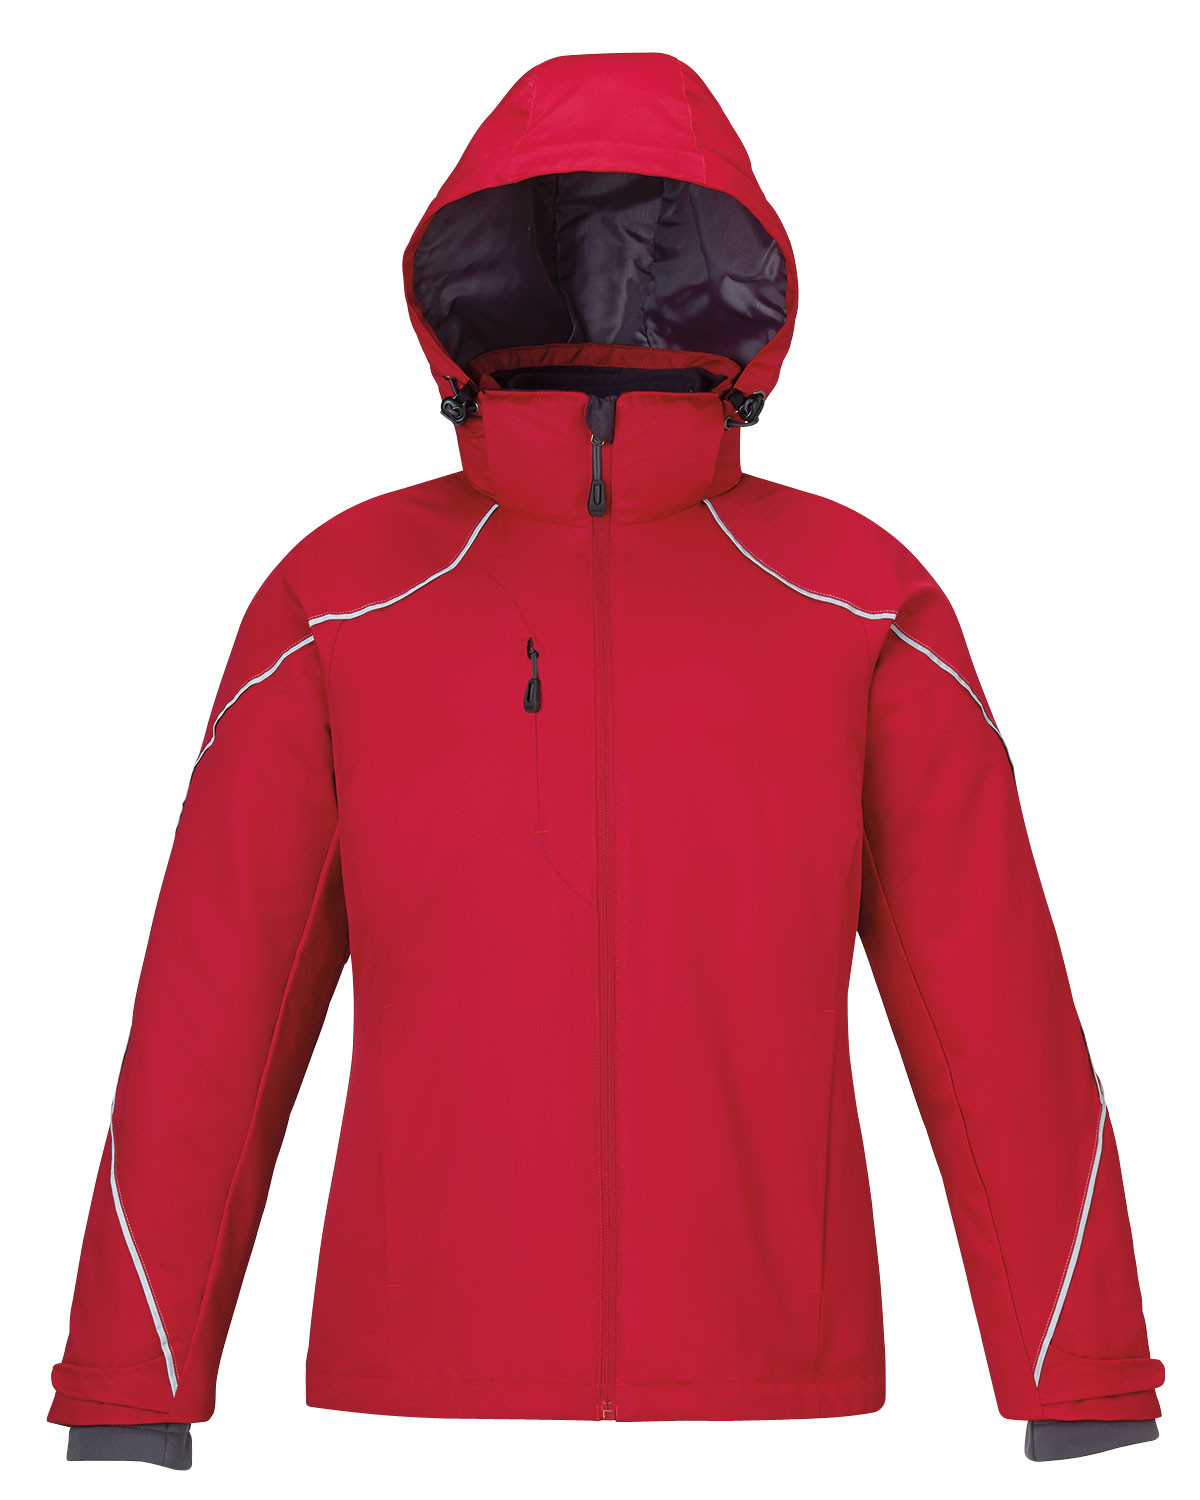 Ash City System Jackets 78196 - Angle Ladies' 3-In-1 ...